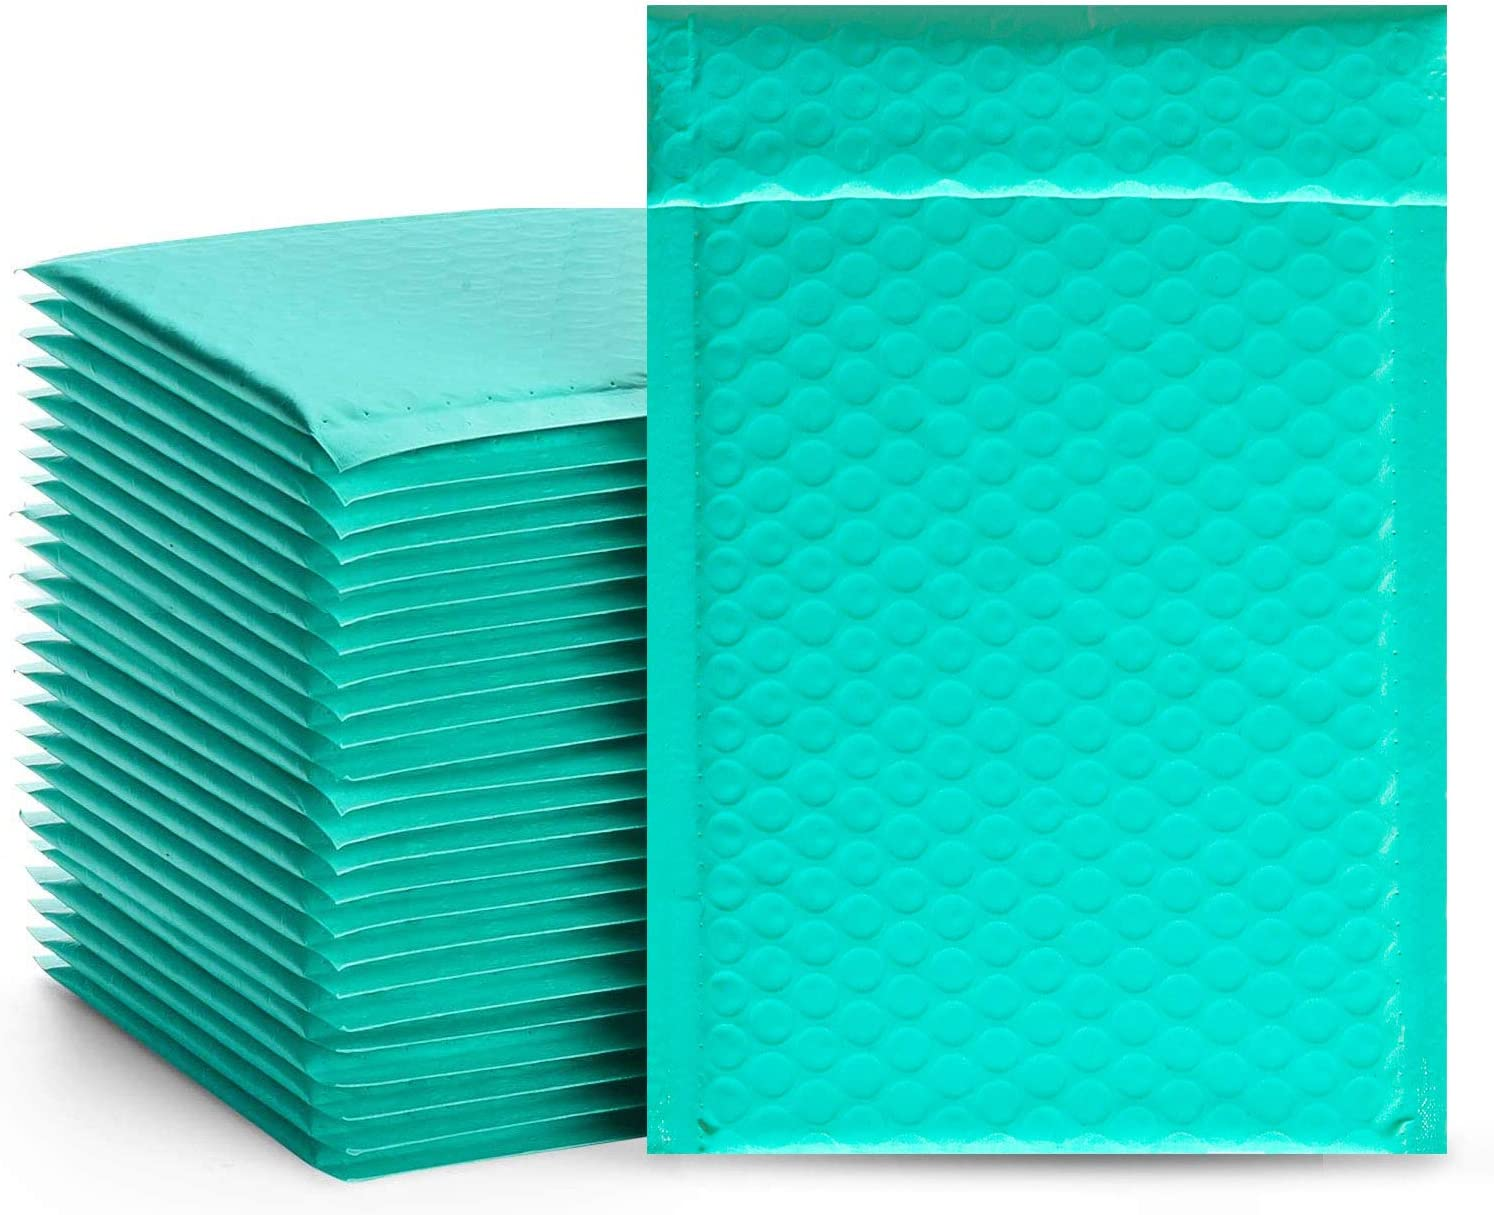 FilmHoo shipfree Poly Bubble Max 84% OFF Mailers 6x10 30 Padded Ship Envelopes Pack